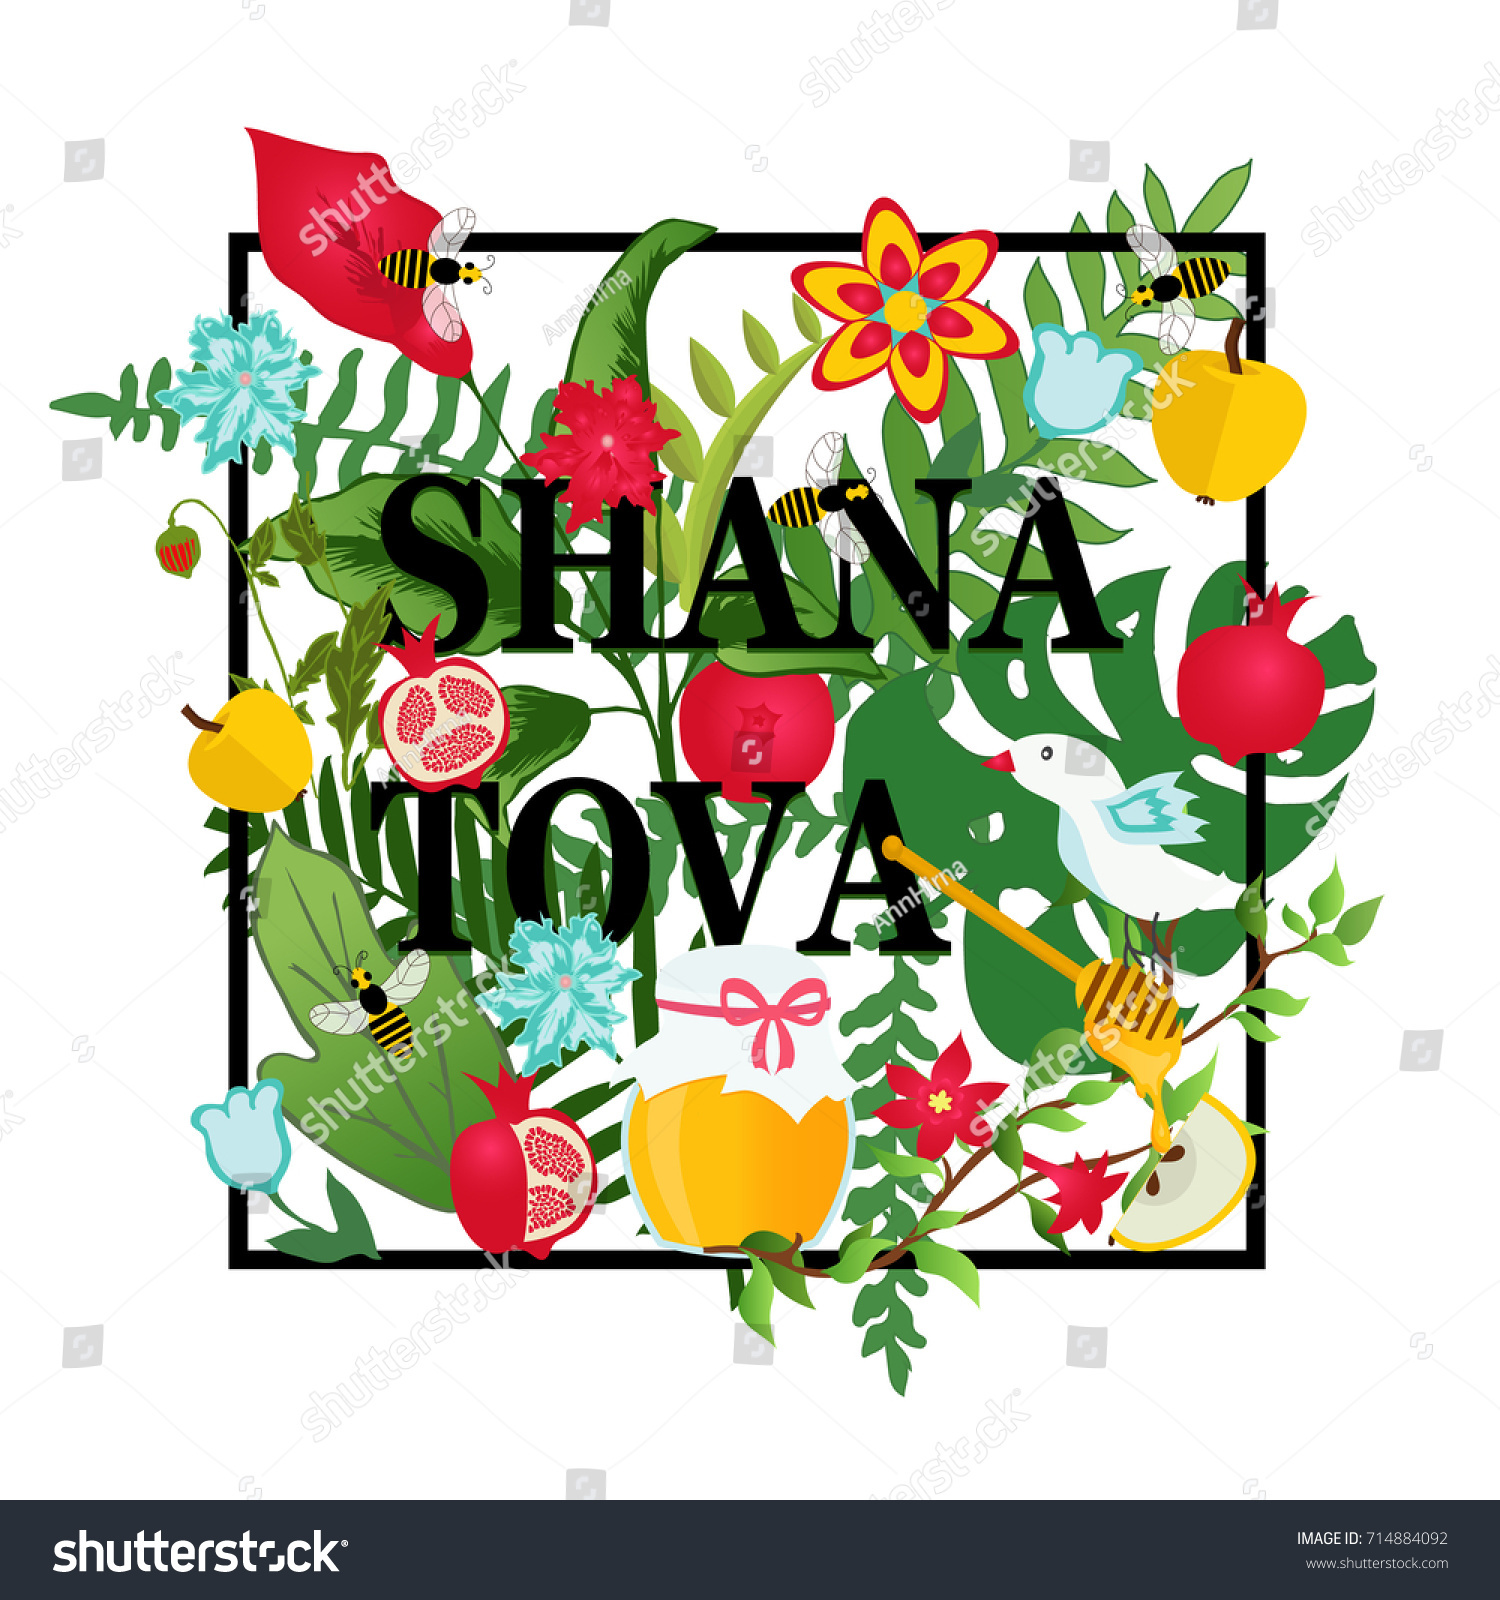 greeting card for jewish new year with flowers and traditional elements of holiday rosh hashanah